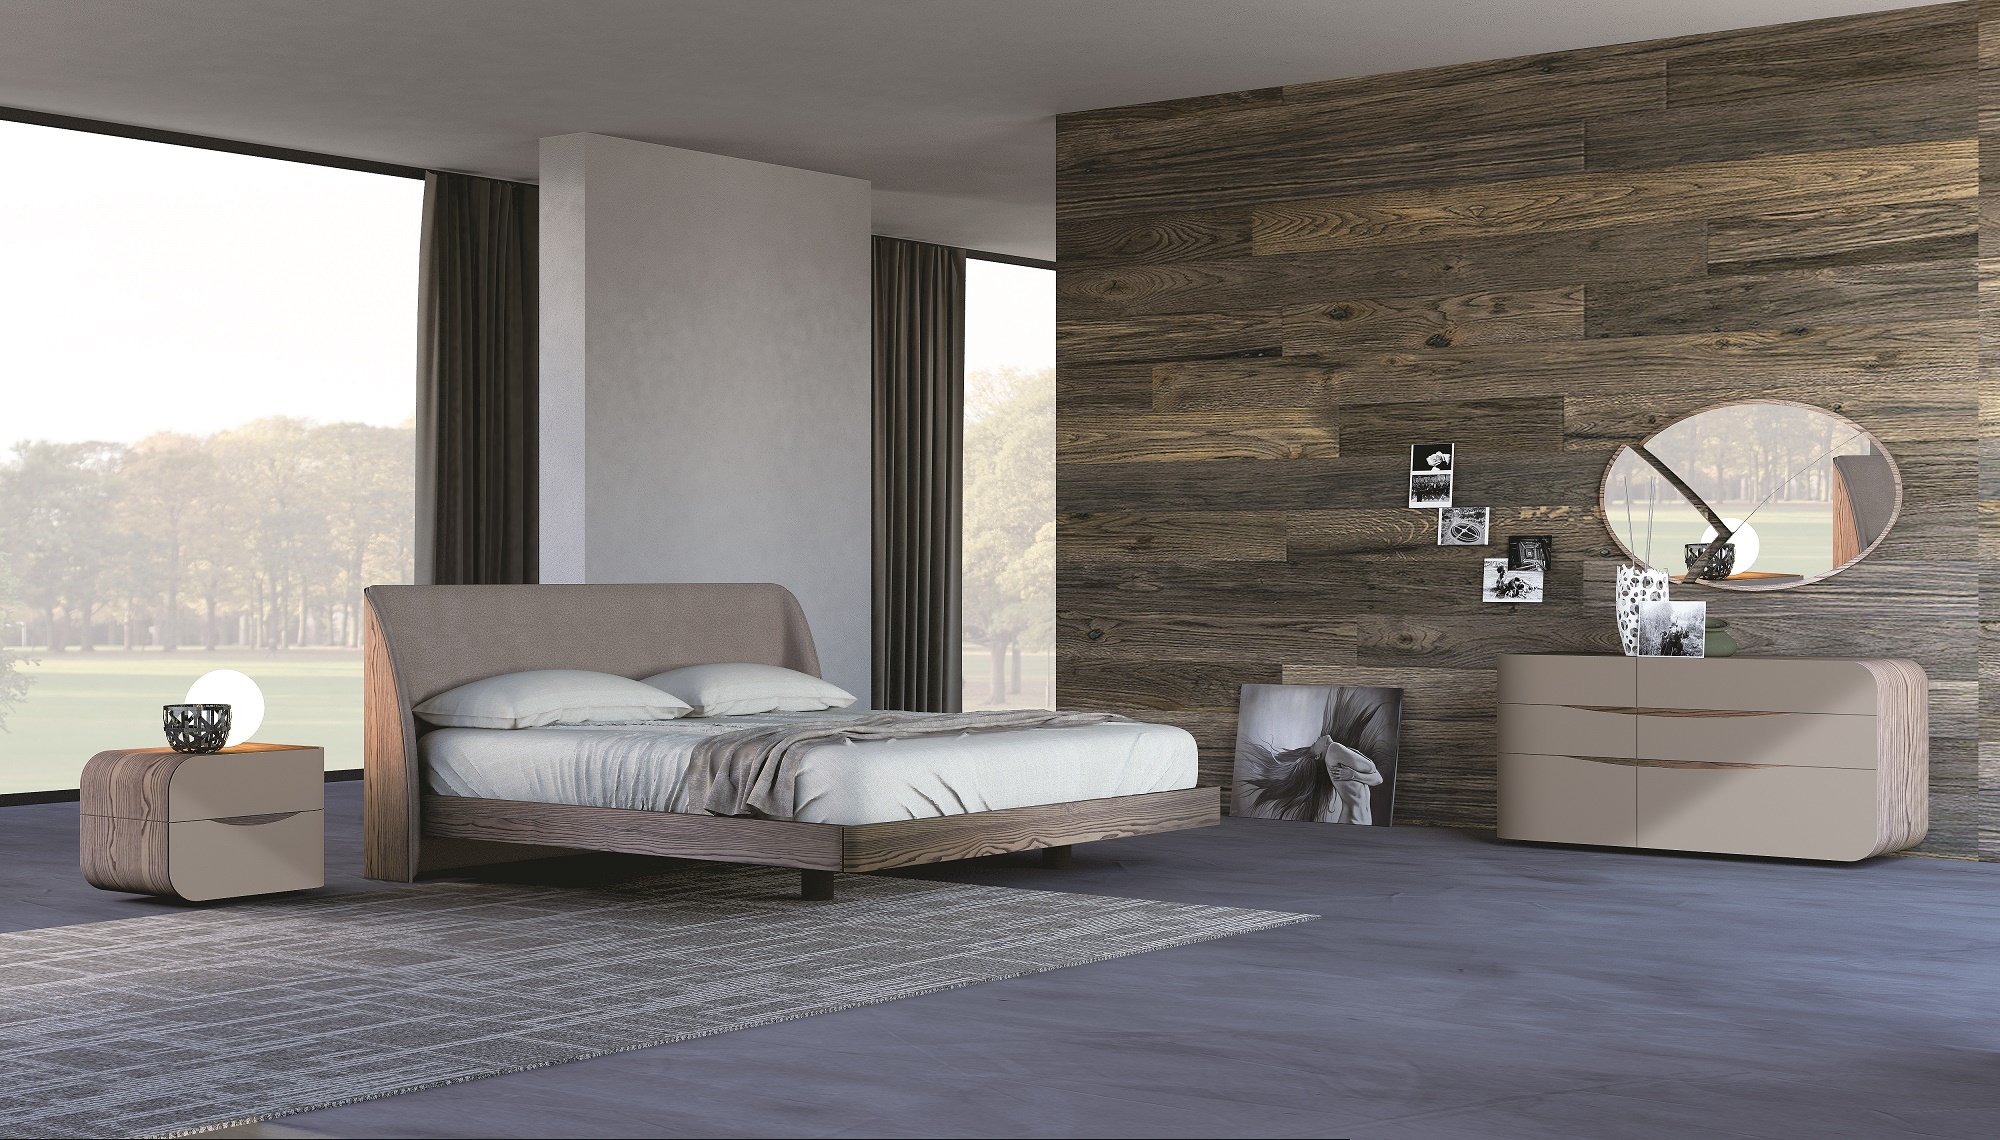 Comodini sospesi design gb27 pineglen - Camere da letto design ...